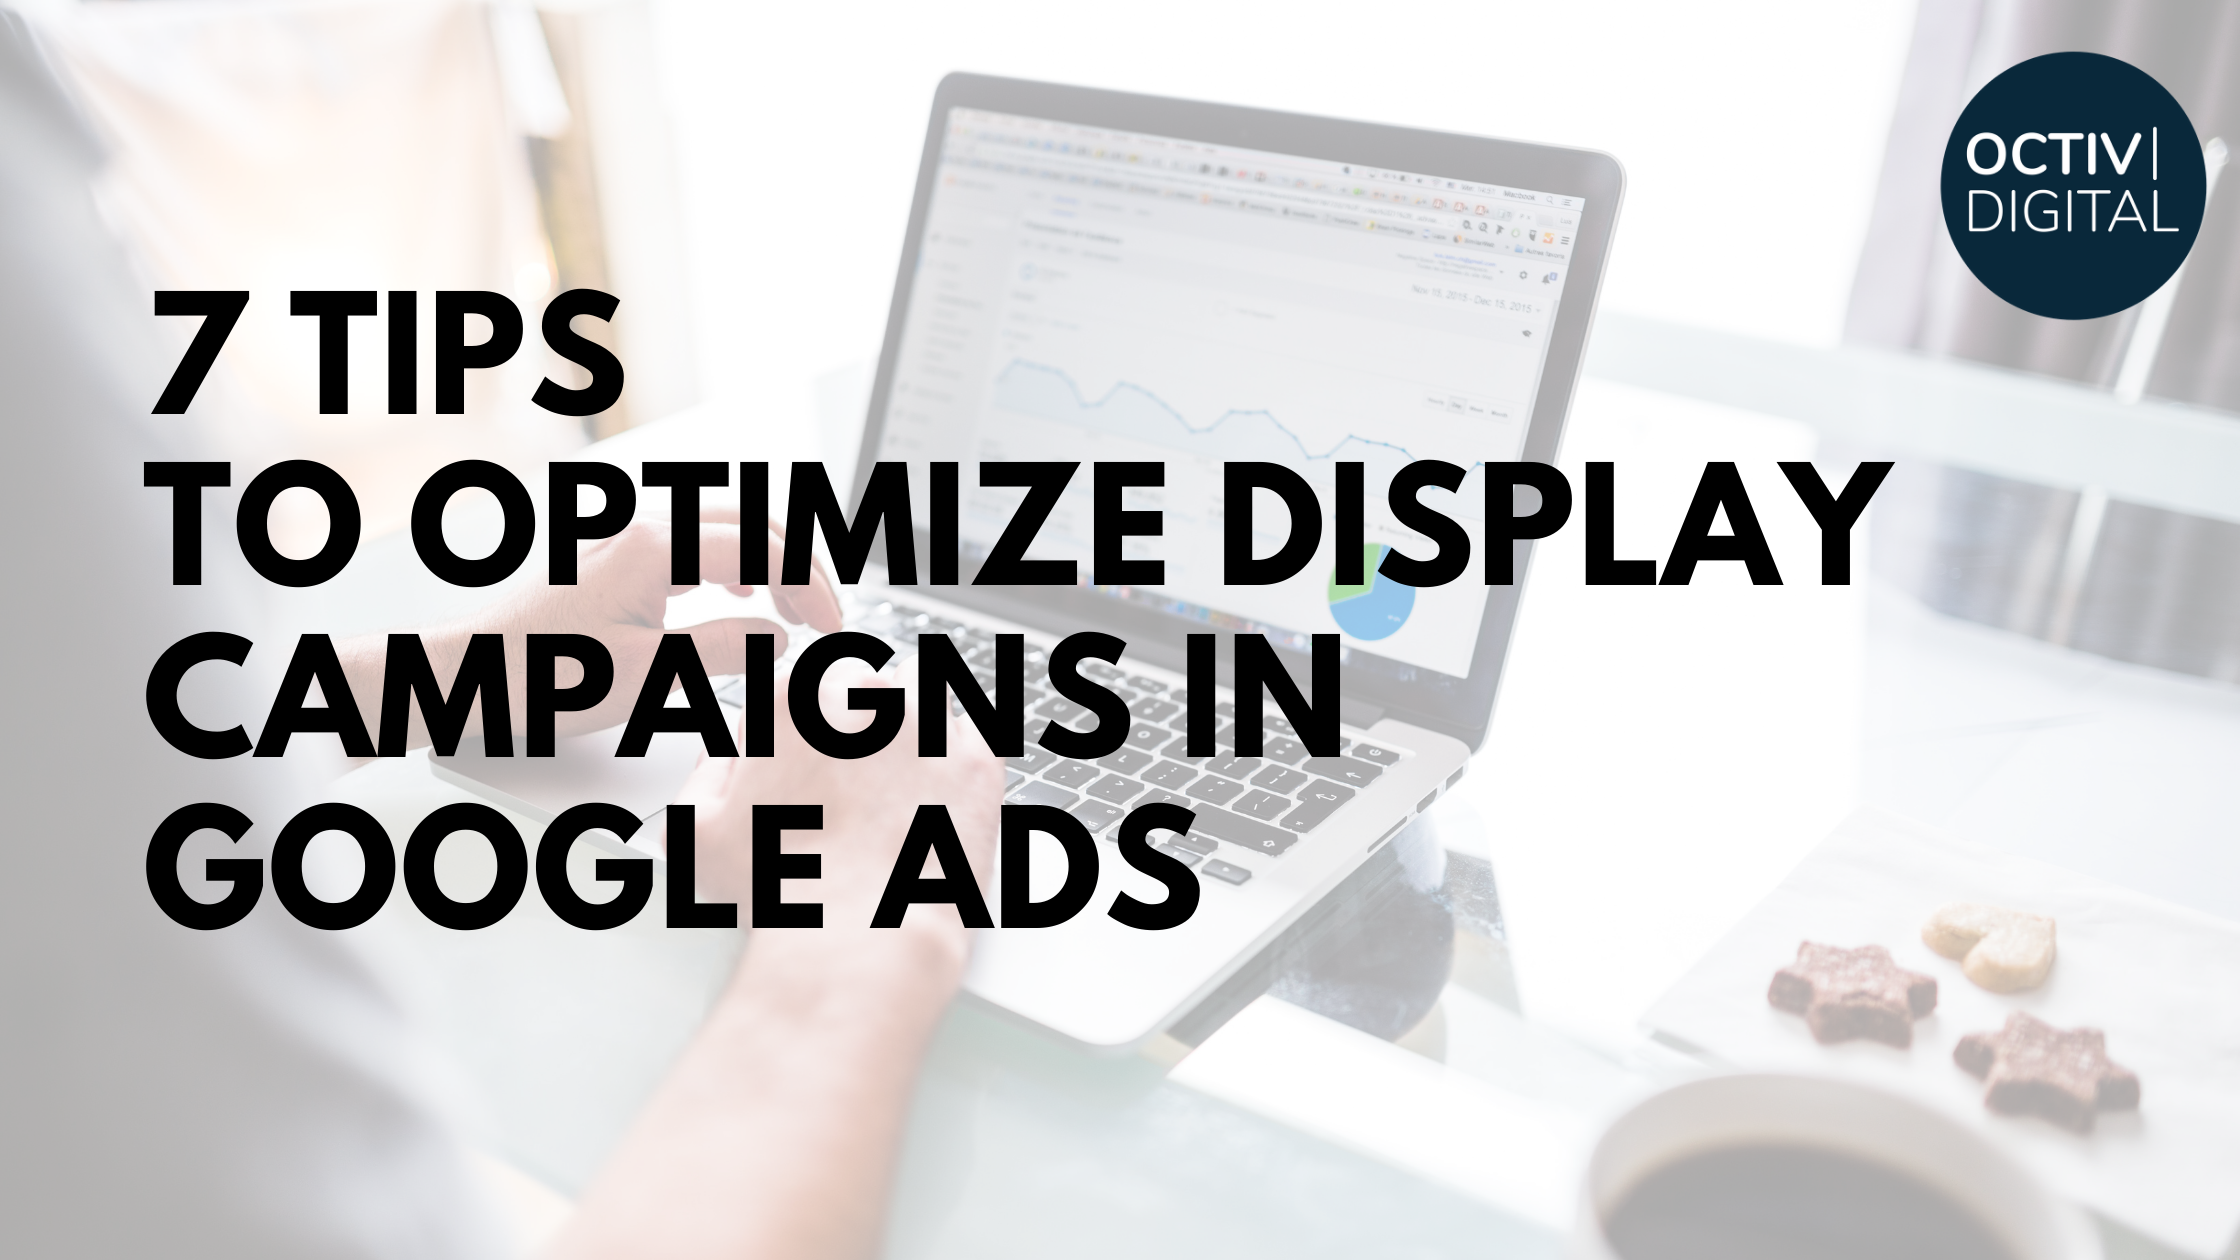 7 Tips to Optimize Google Display Campaigns